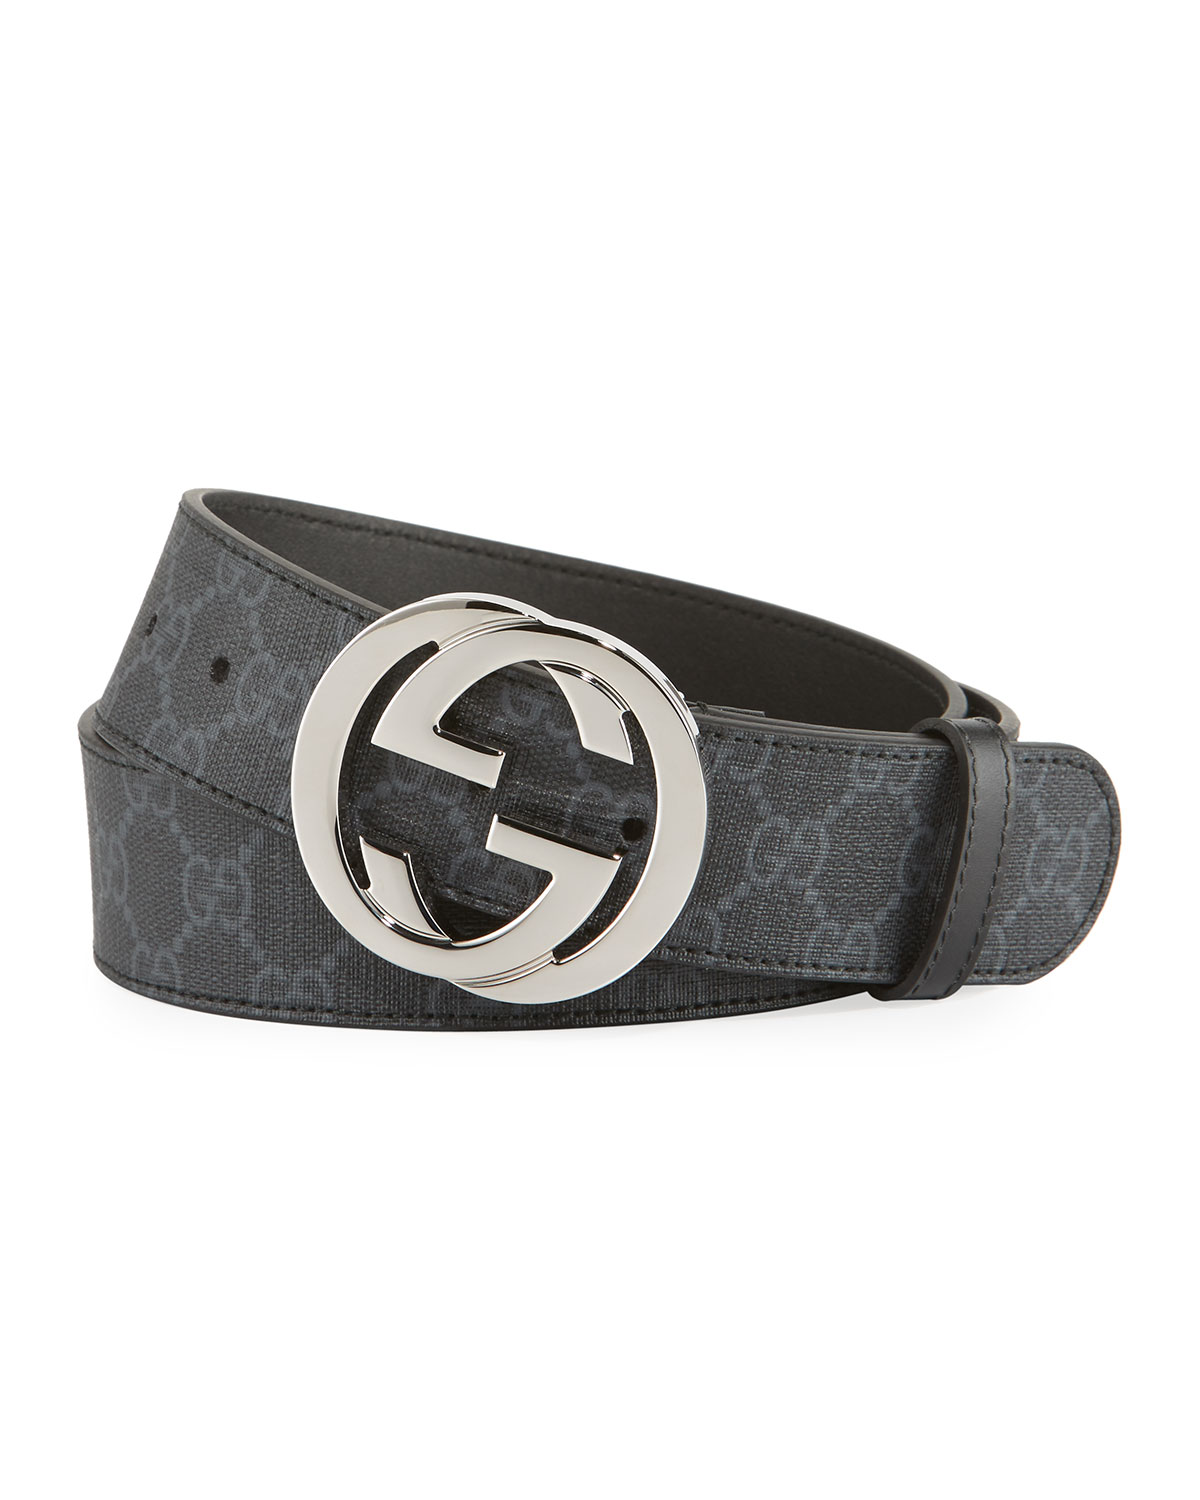 a0fa897d265 Gucci GG Supreme Belt with G buckle